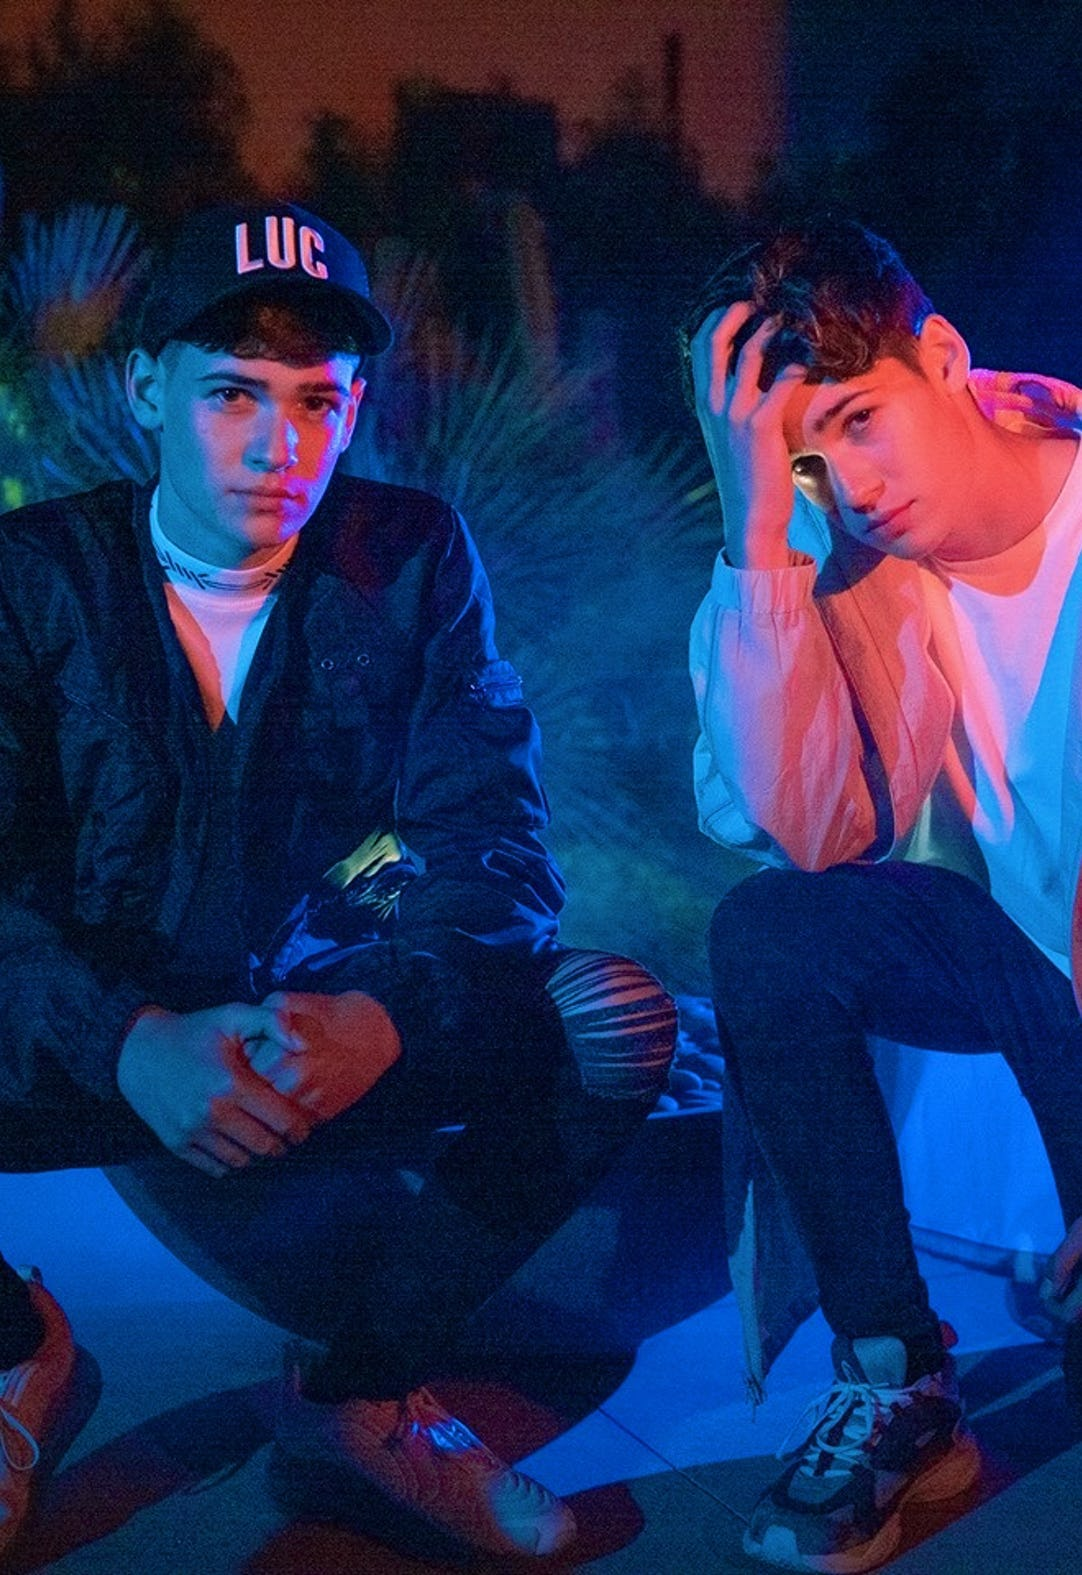 Seventeen-year-old identical twin brothers Max and Harvey Mills have become TikTok sensations. Find out more now.